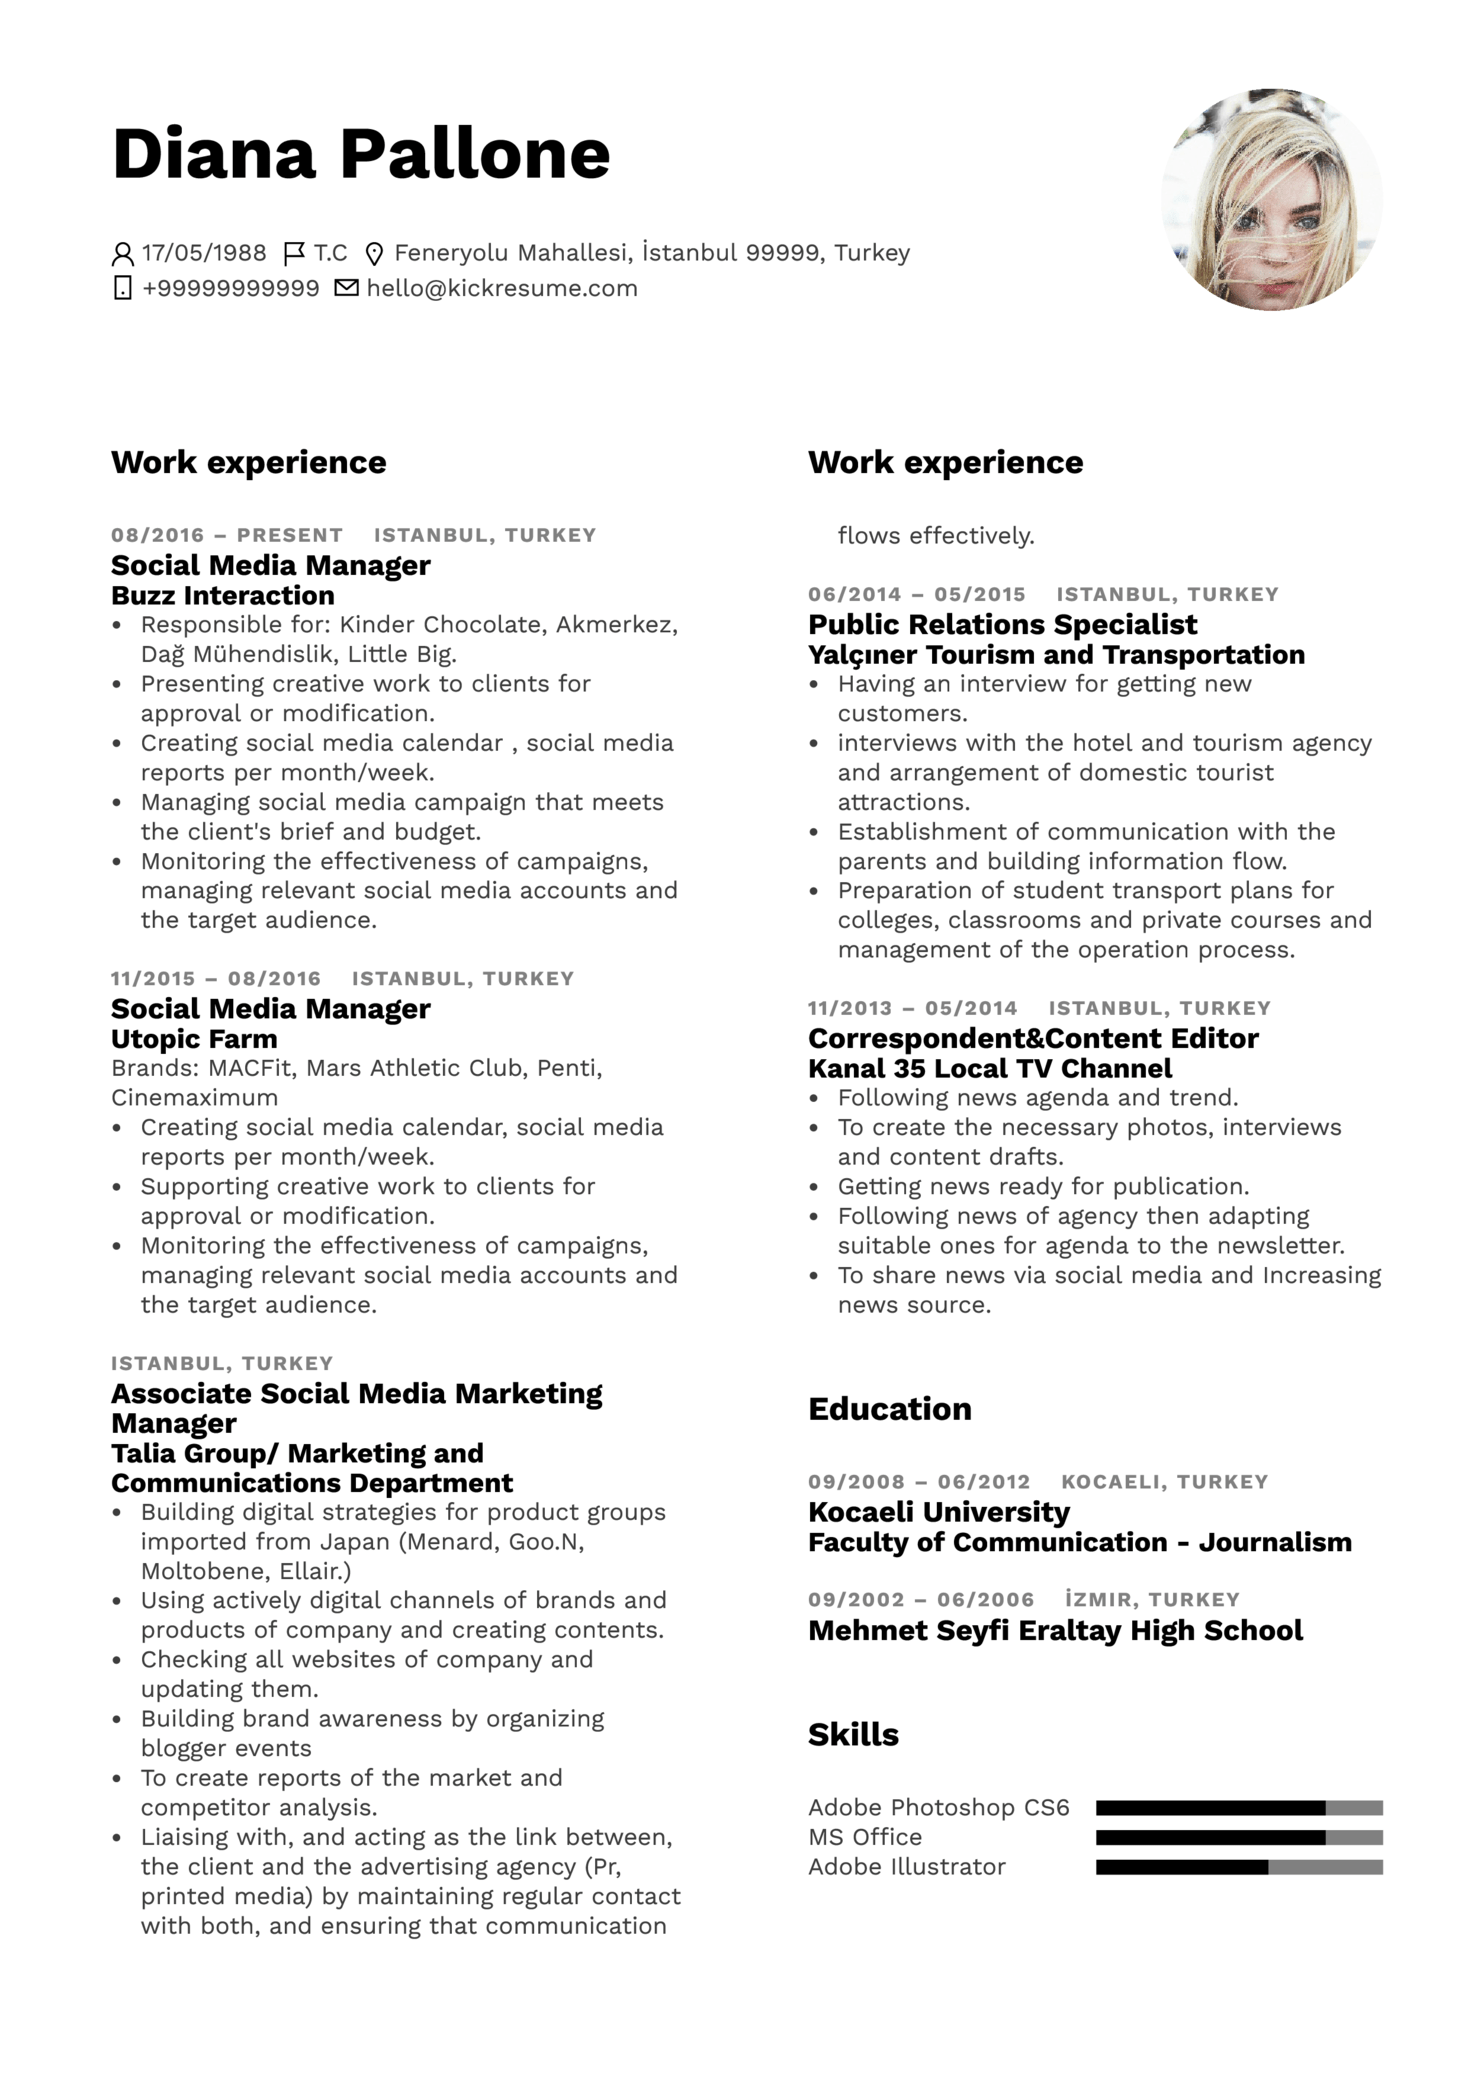 Loreal Social Media Manager Resume Sample Kickresume